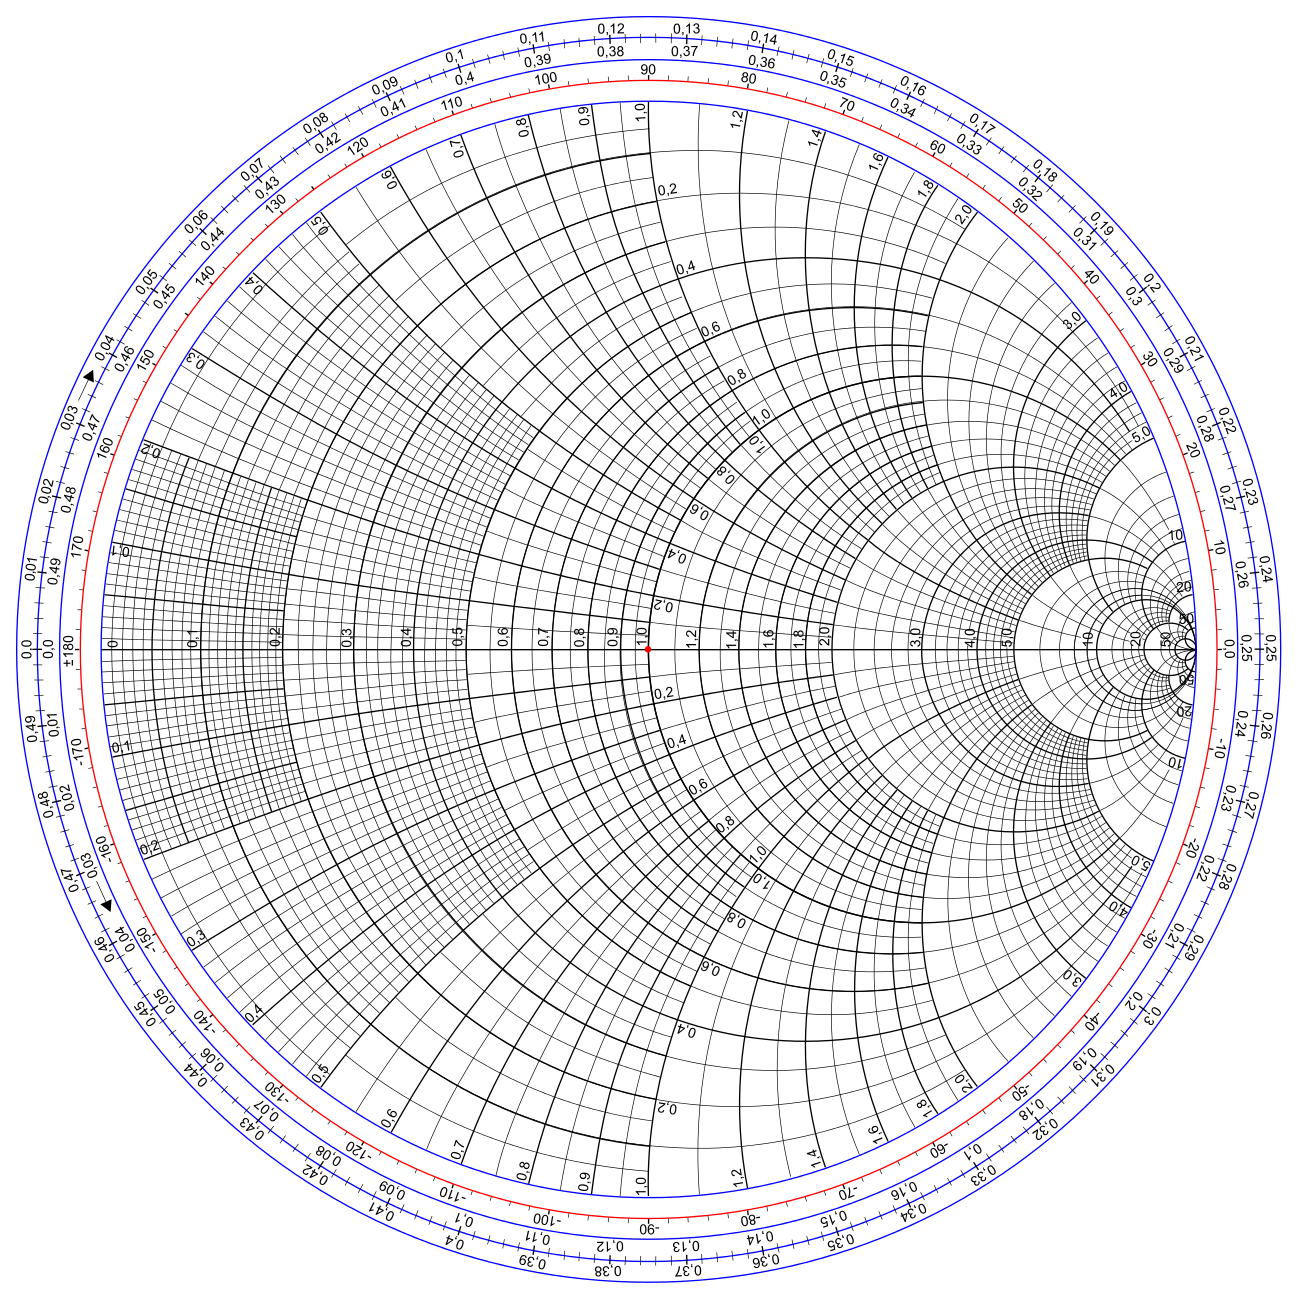 Smith-Diagramm (Quelle: https://upload.wikimedia.org/wikipedia/commons/7/7a/Smith_chart_gen.svg)